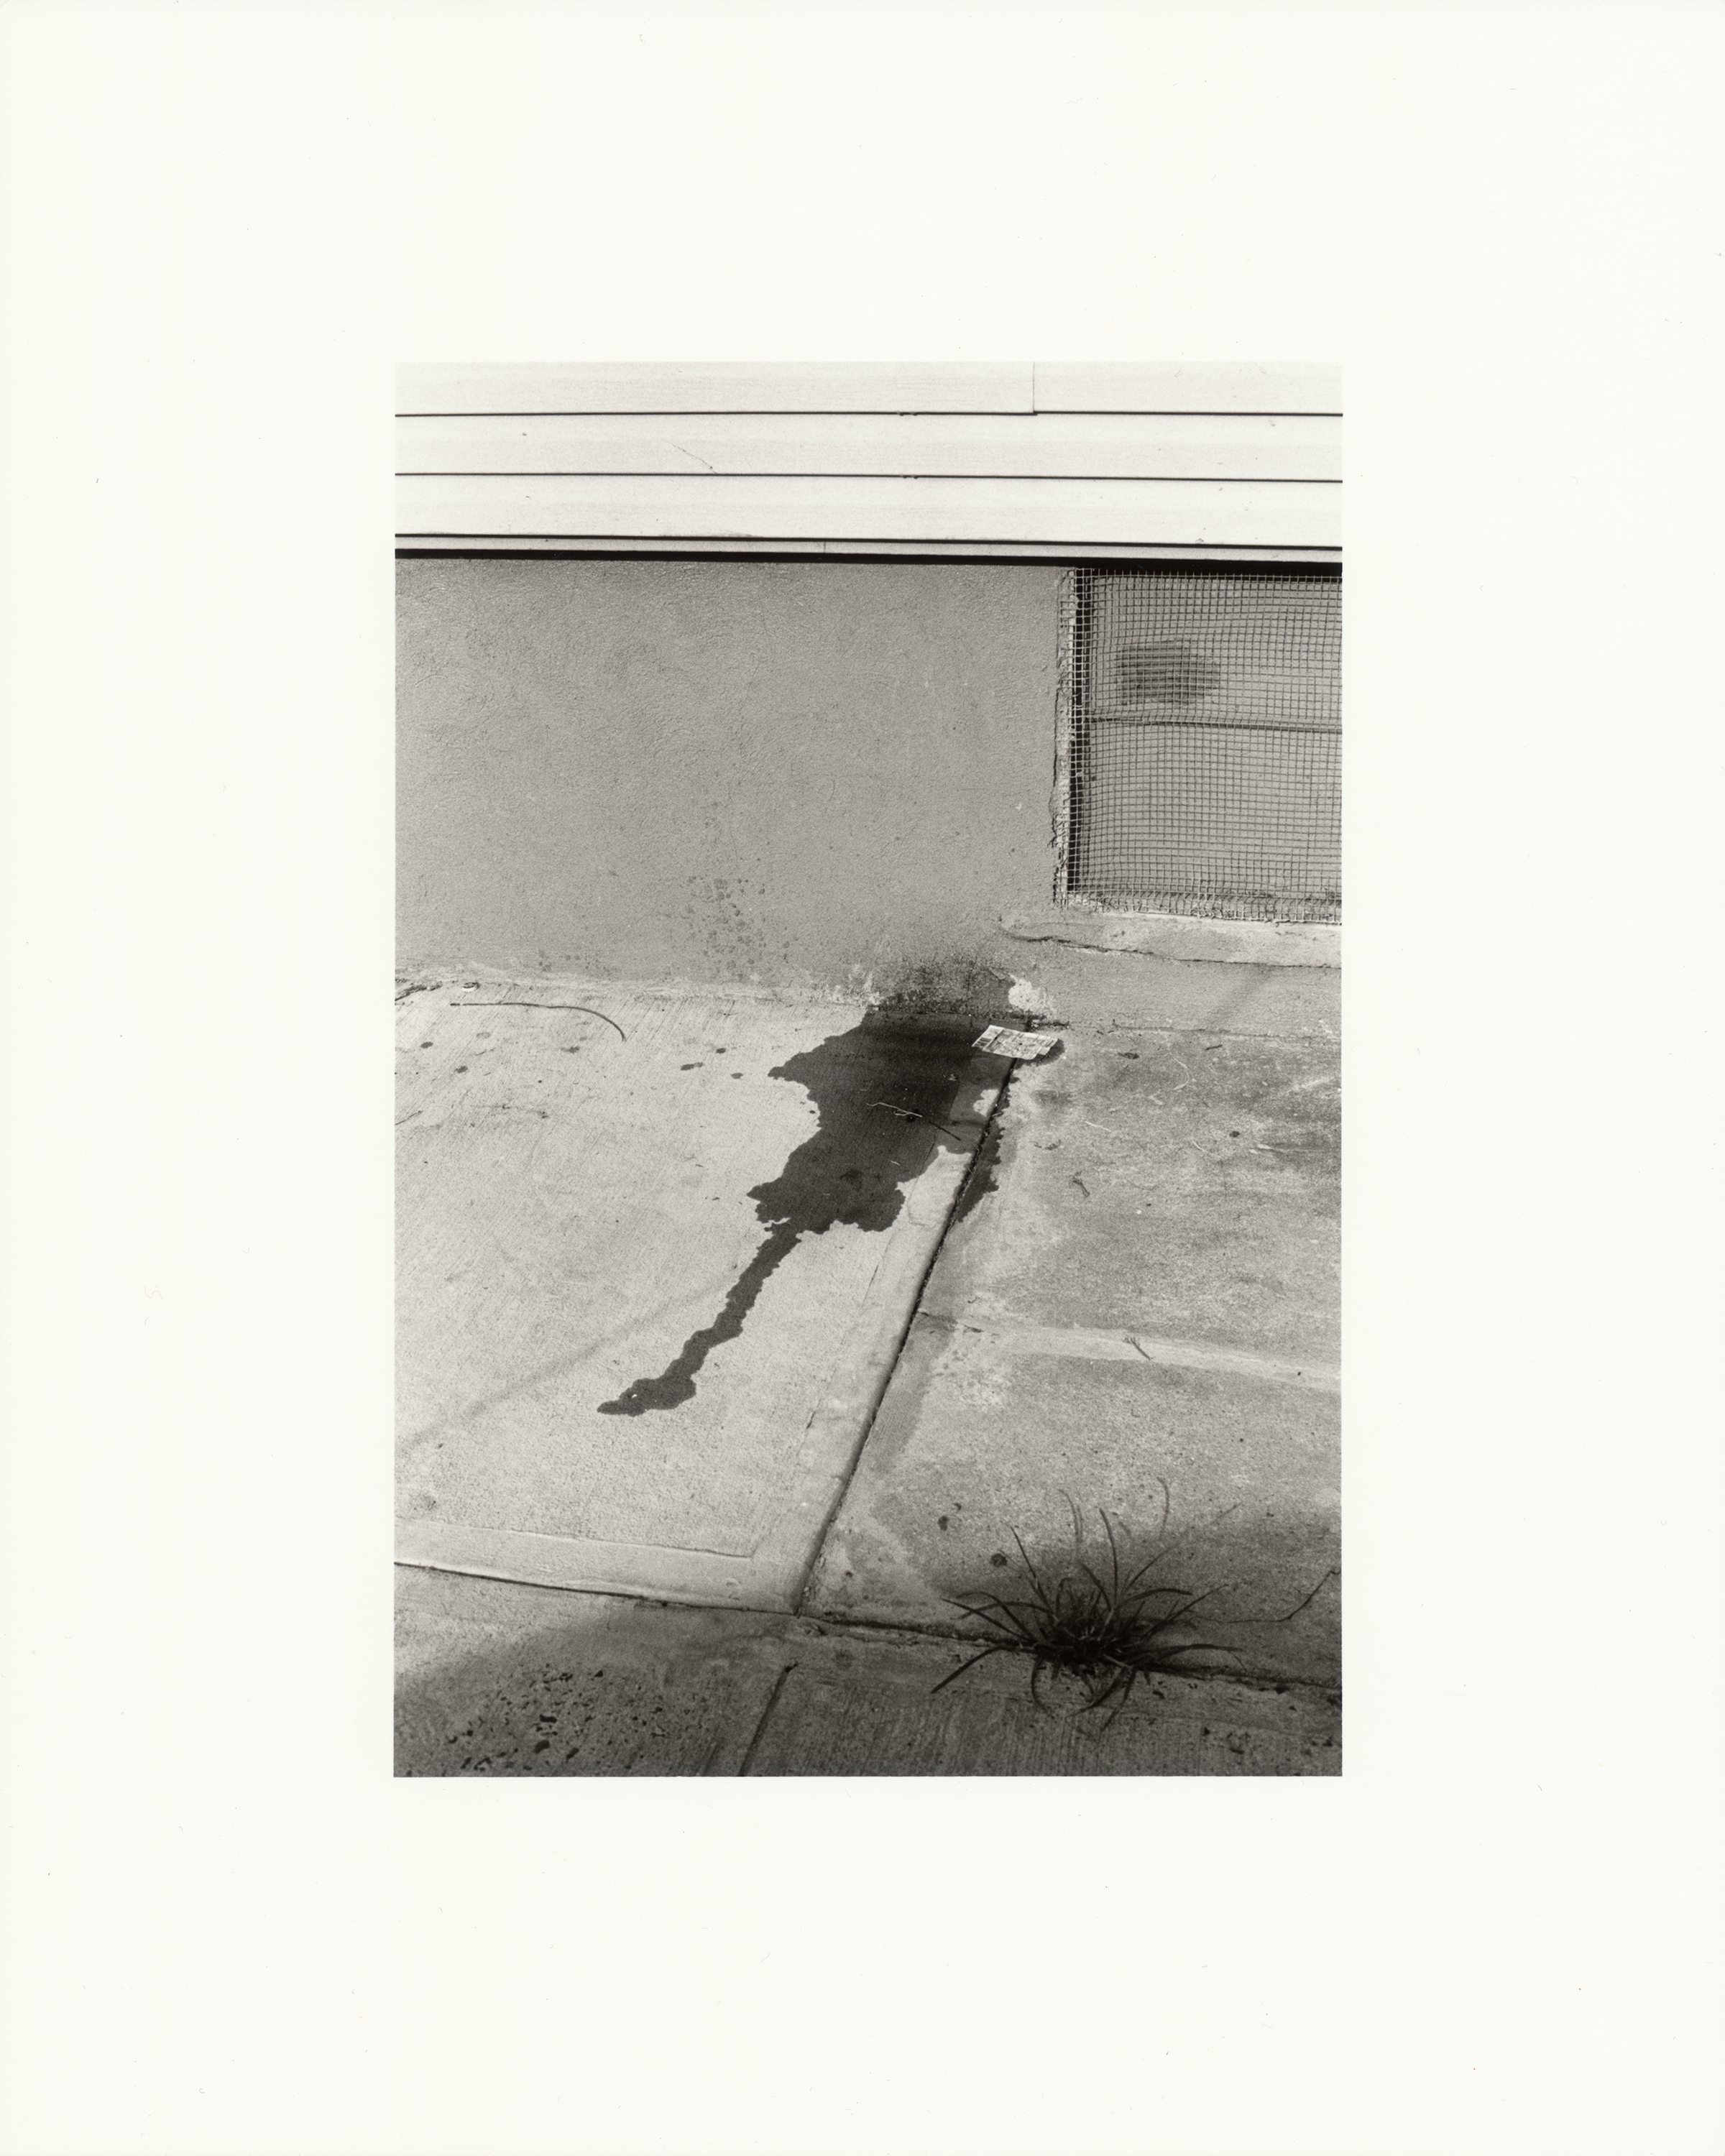 Untitled , 2013  gelatin silver print, selenium toned; printed 2019  image 4.3 x 6.5 inches  paper 8 x 10 inches